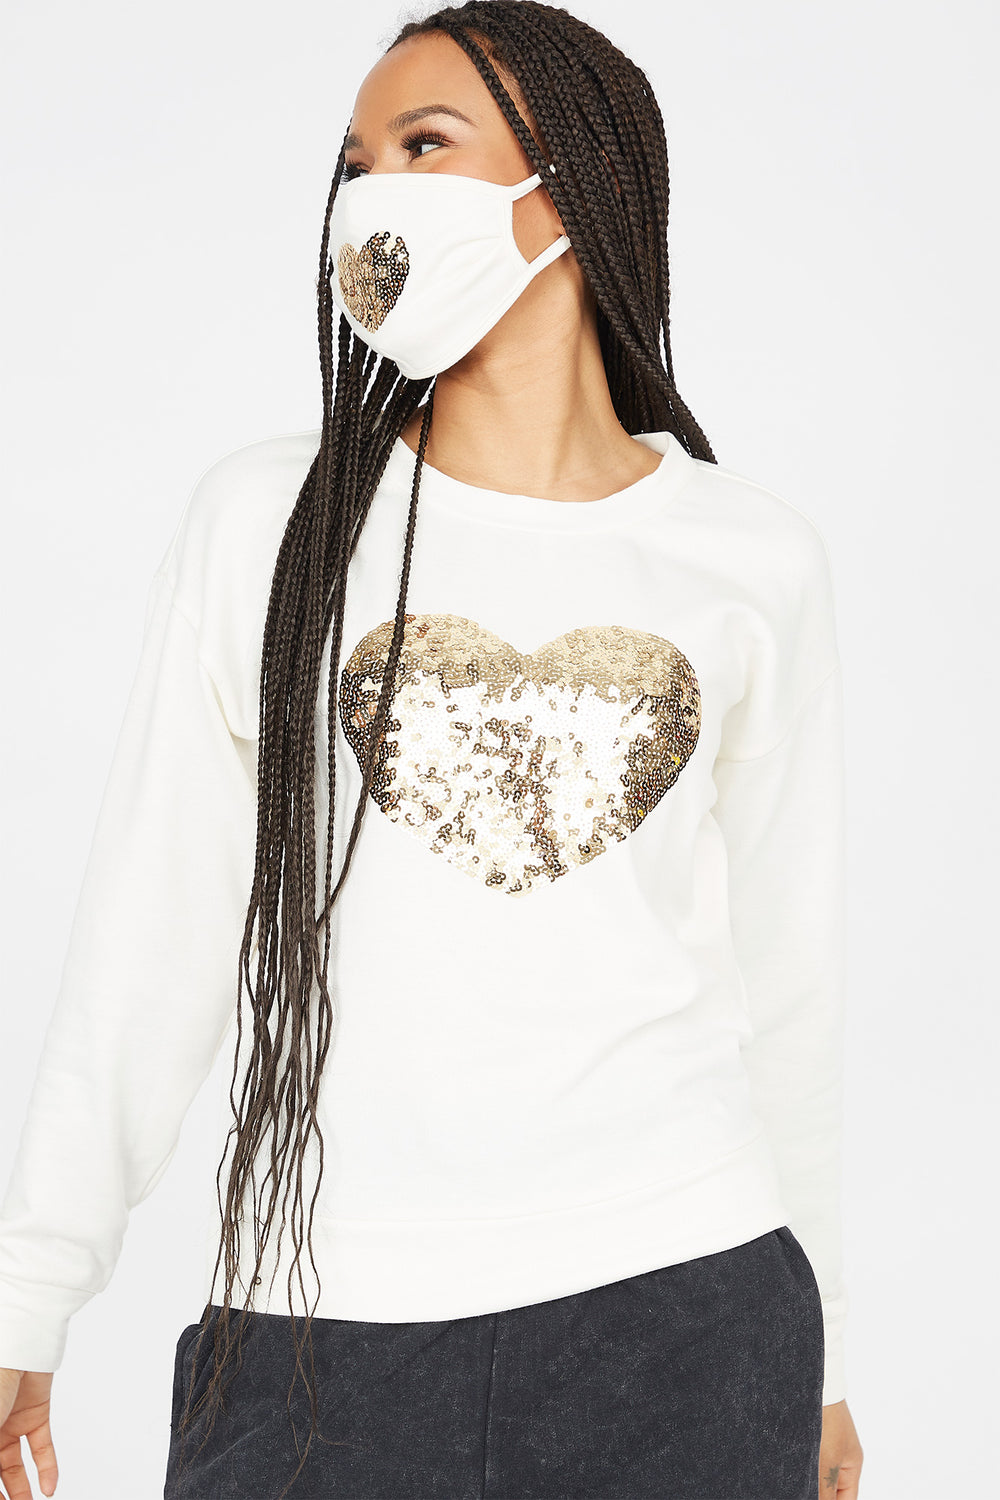 2-Piece Soft Fleece Crew Neck Sequin Heart Long Sleeve Top With Washable & Reusable Protective Face Mask Set Ivory